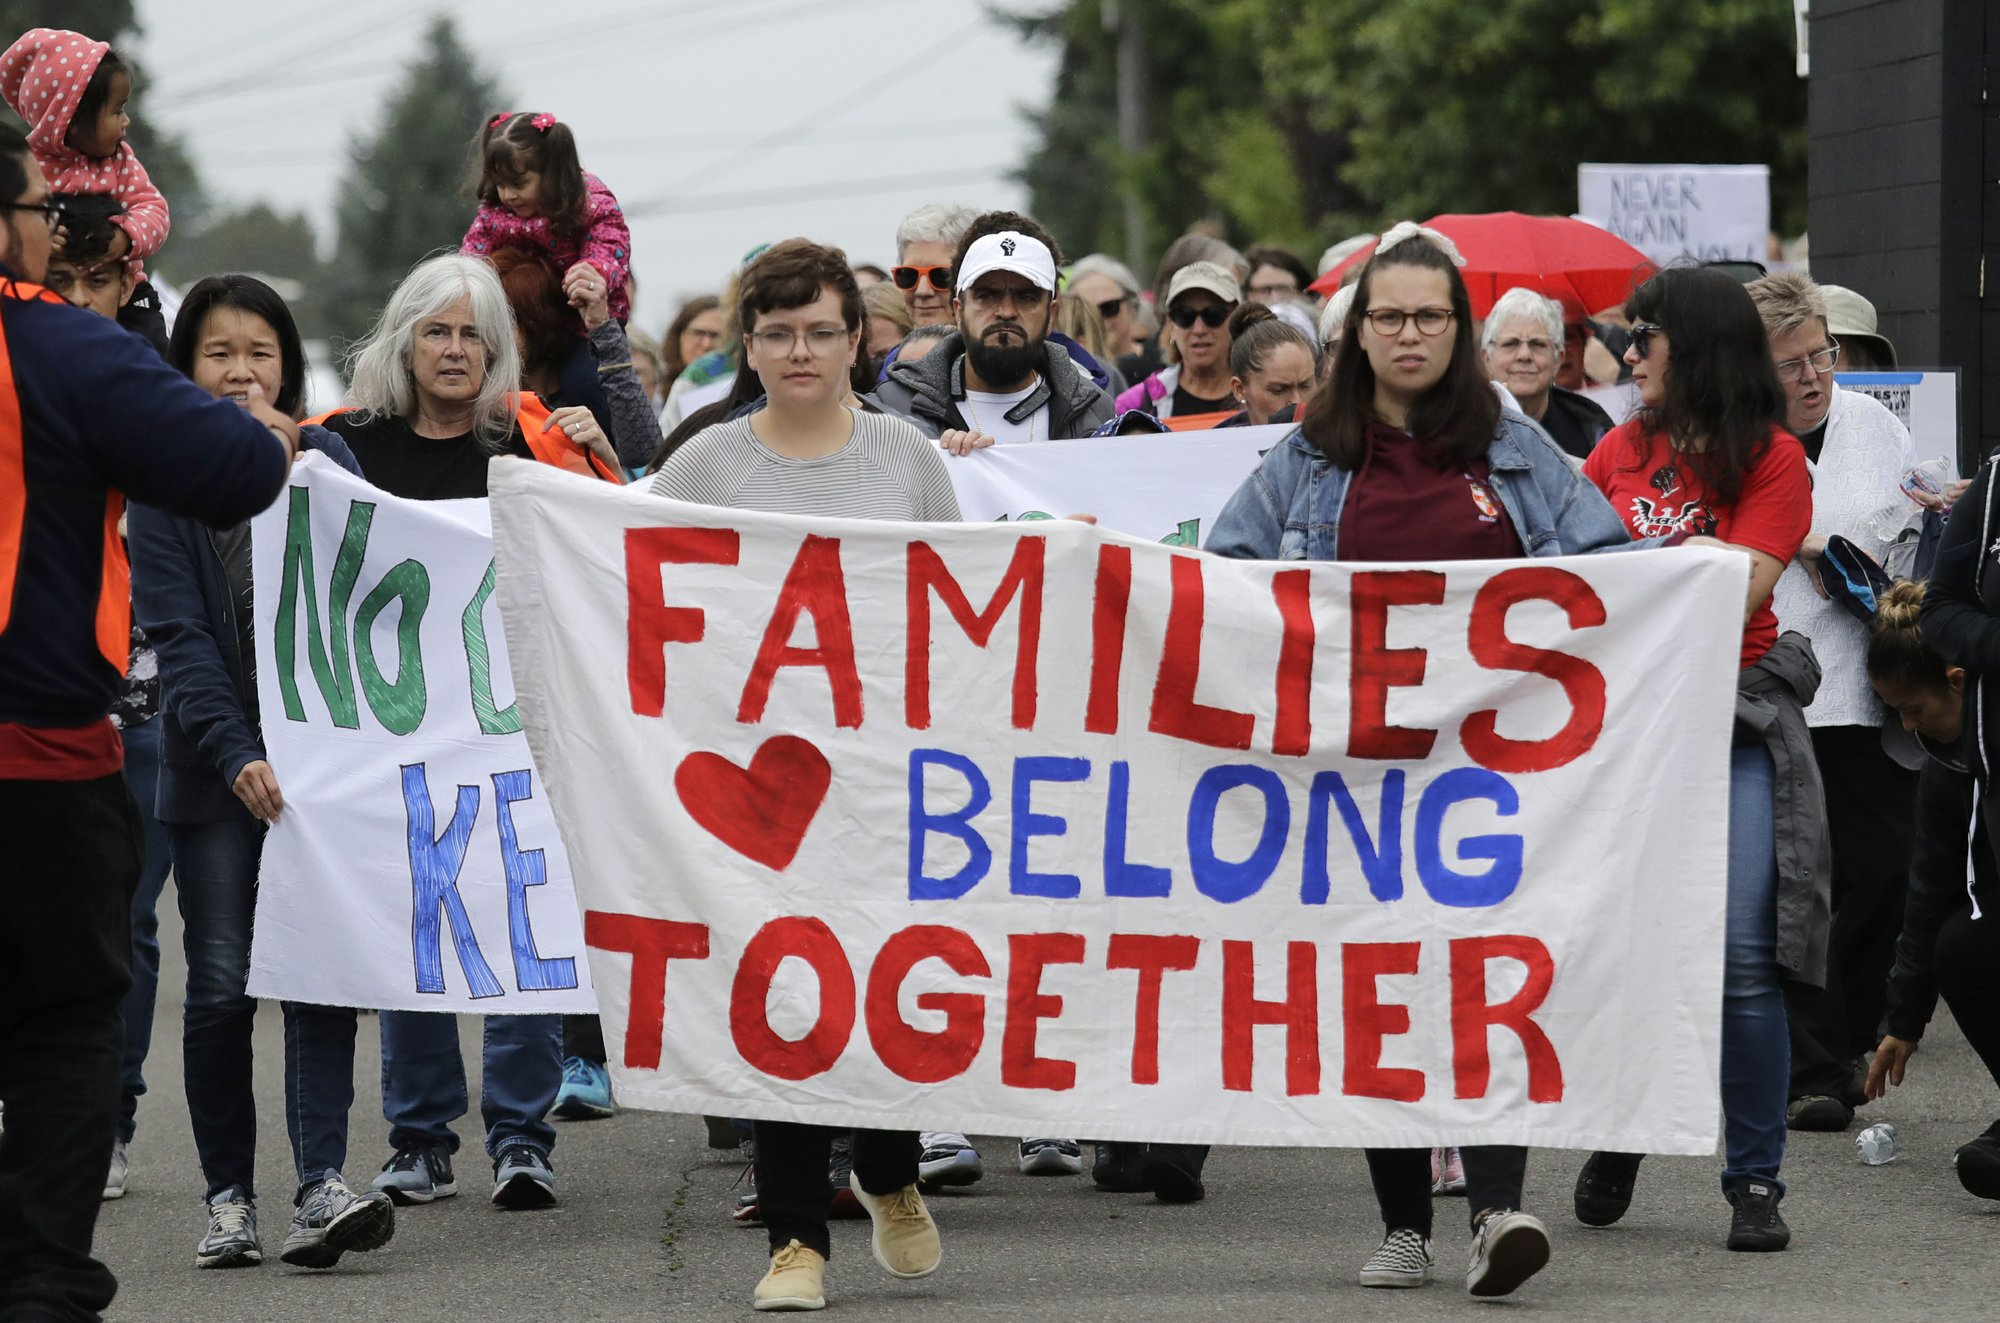 Across US, clergy mobilize to support vulnerable migrants